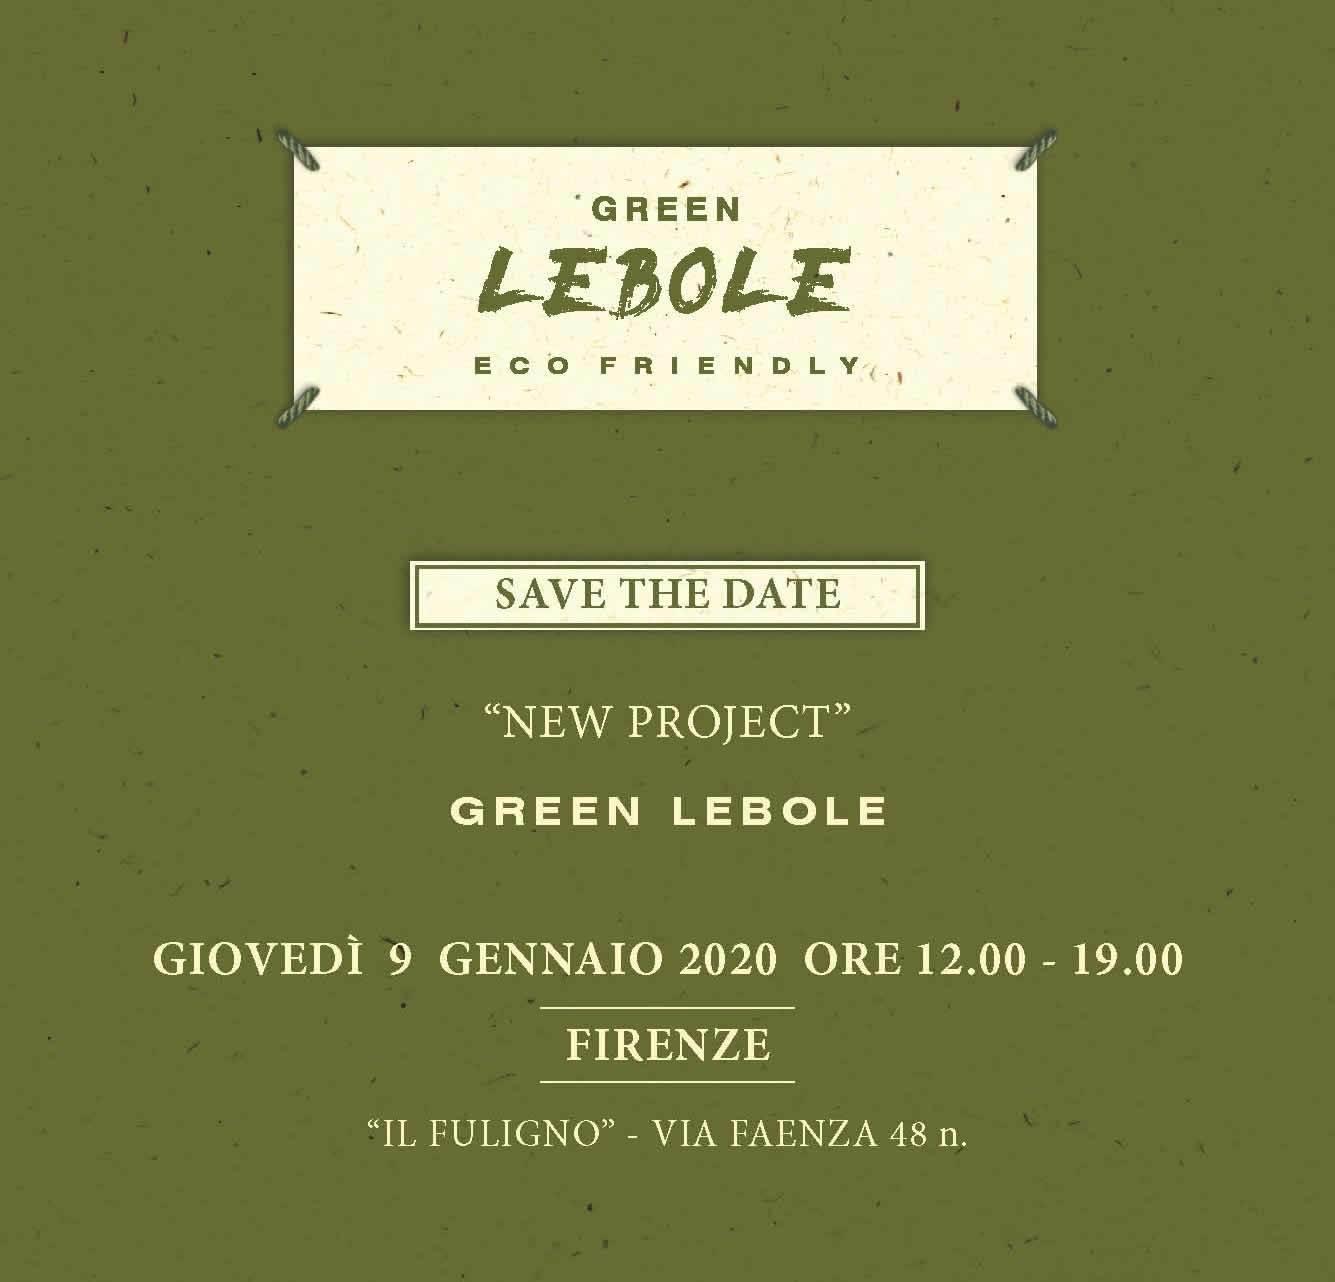 """New Project"" GREEN LEBOLE"